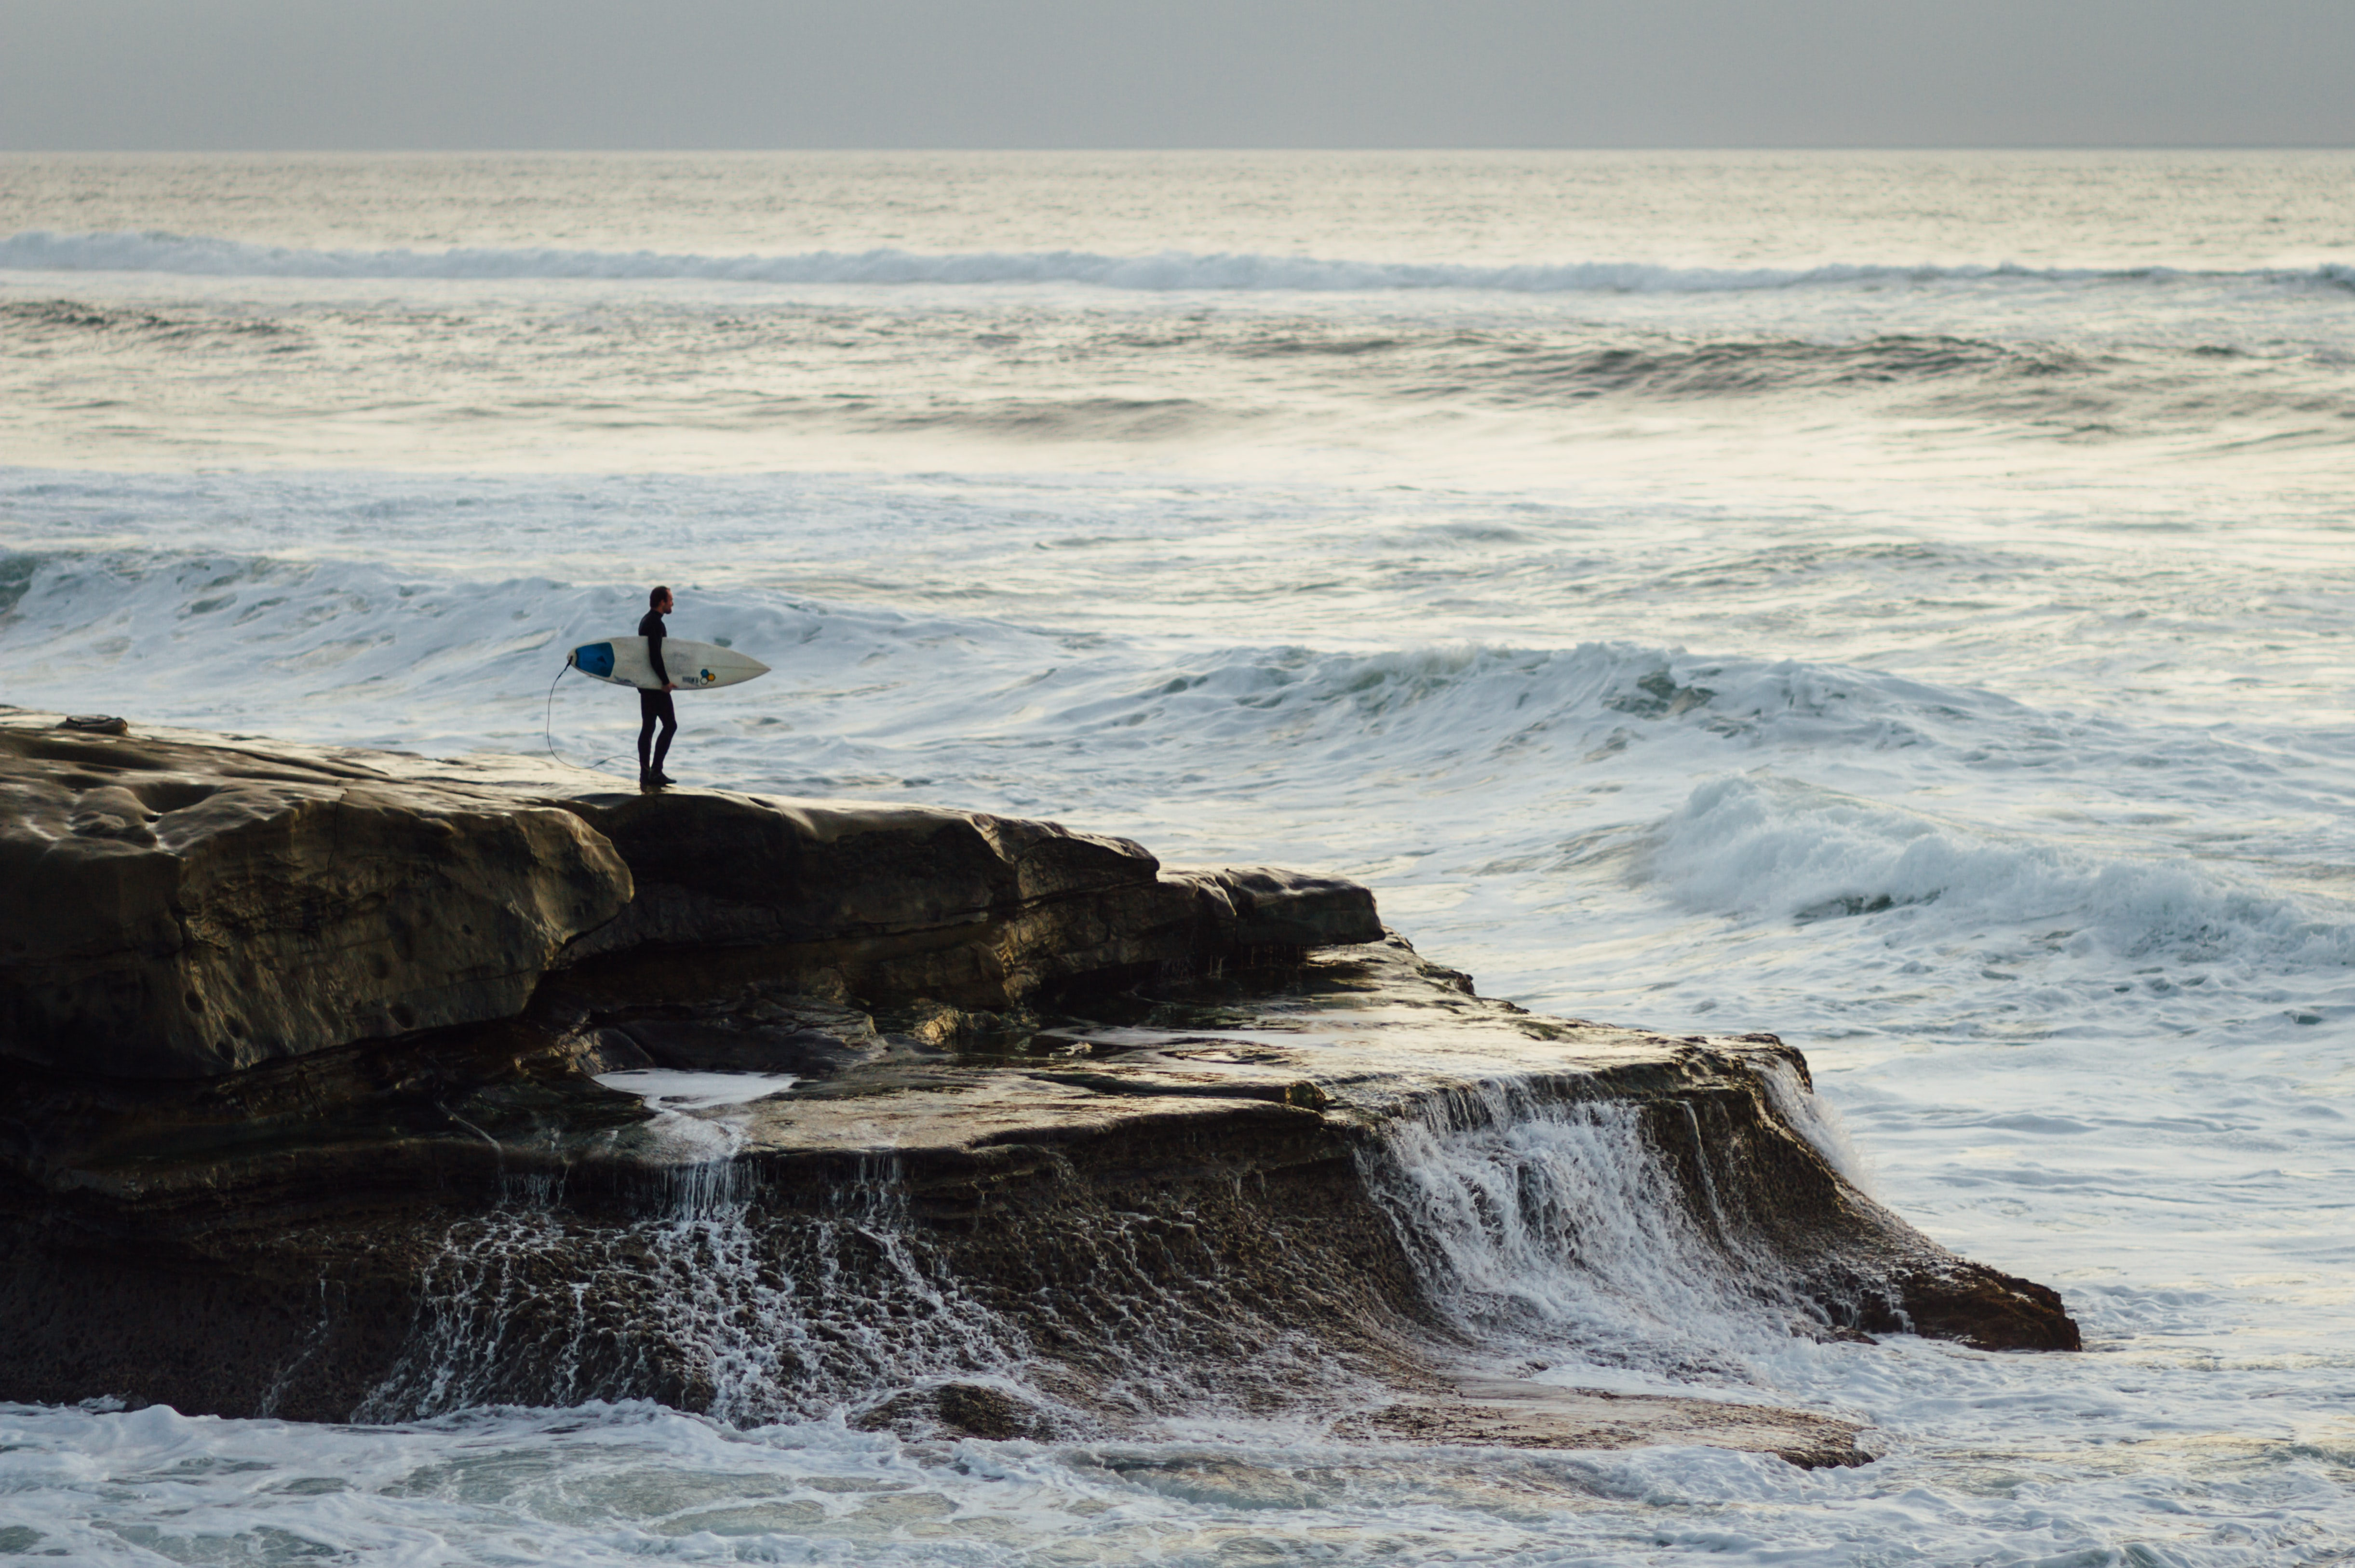 Surfer with a surfboard standing on a coastal rock watching rough ocean at Ocean Beach